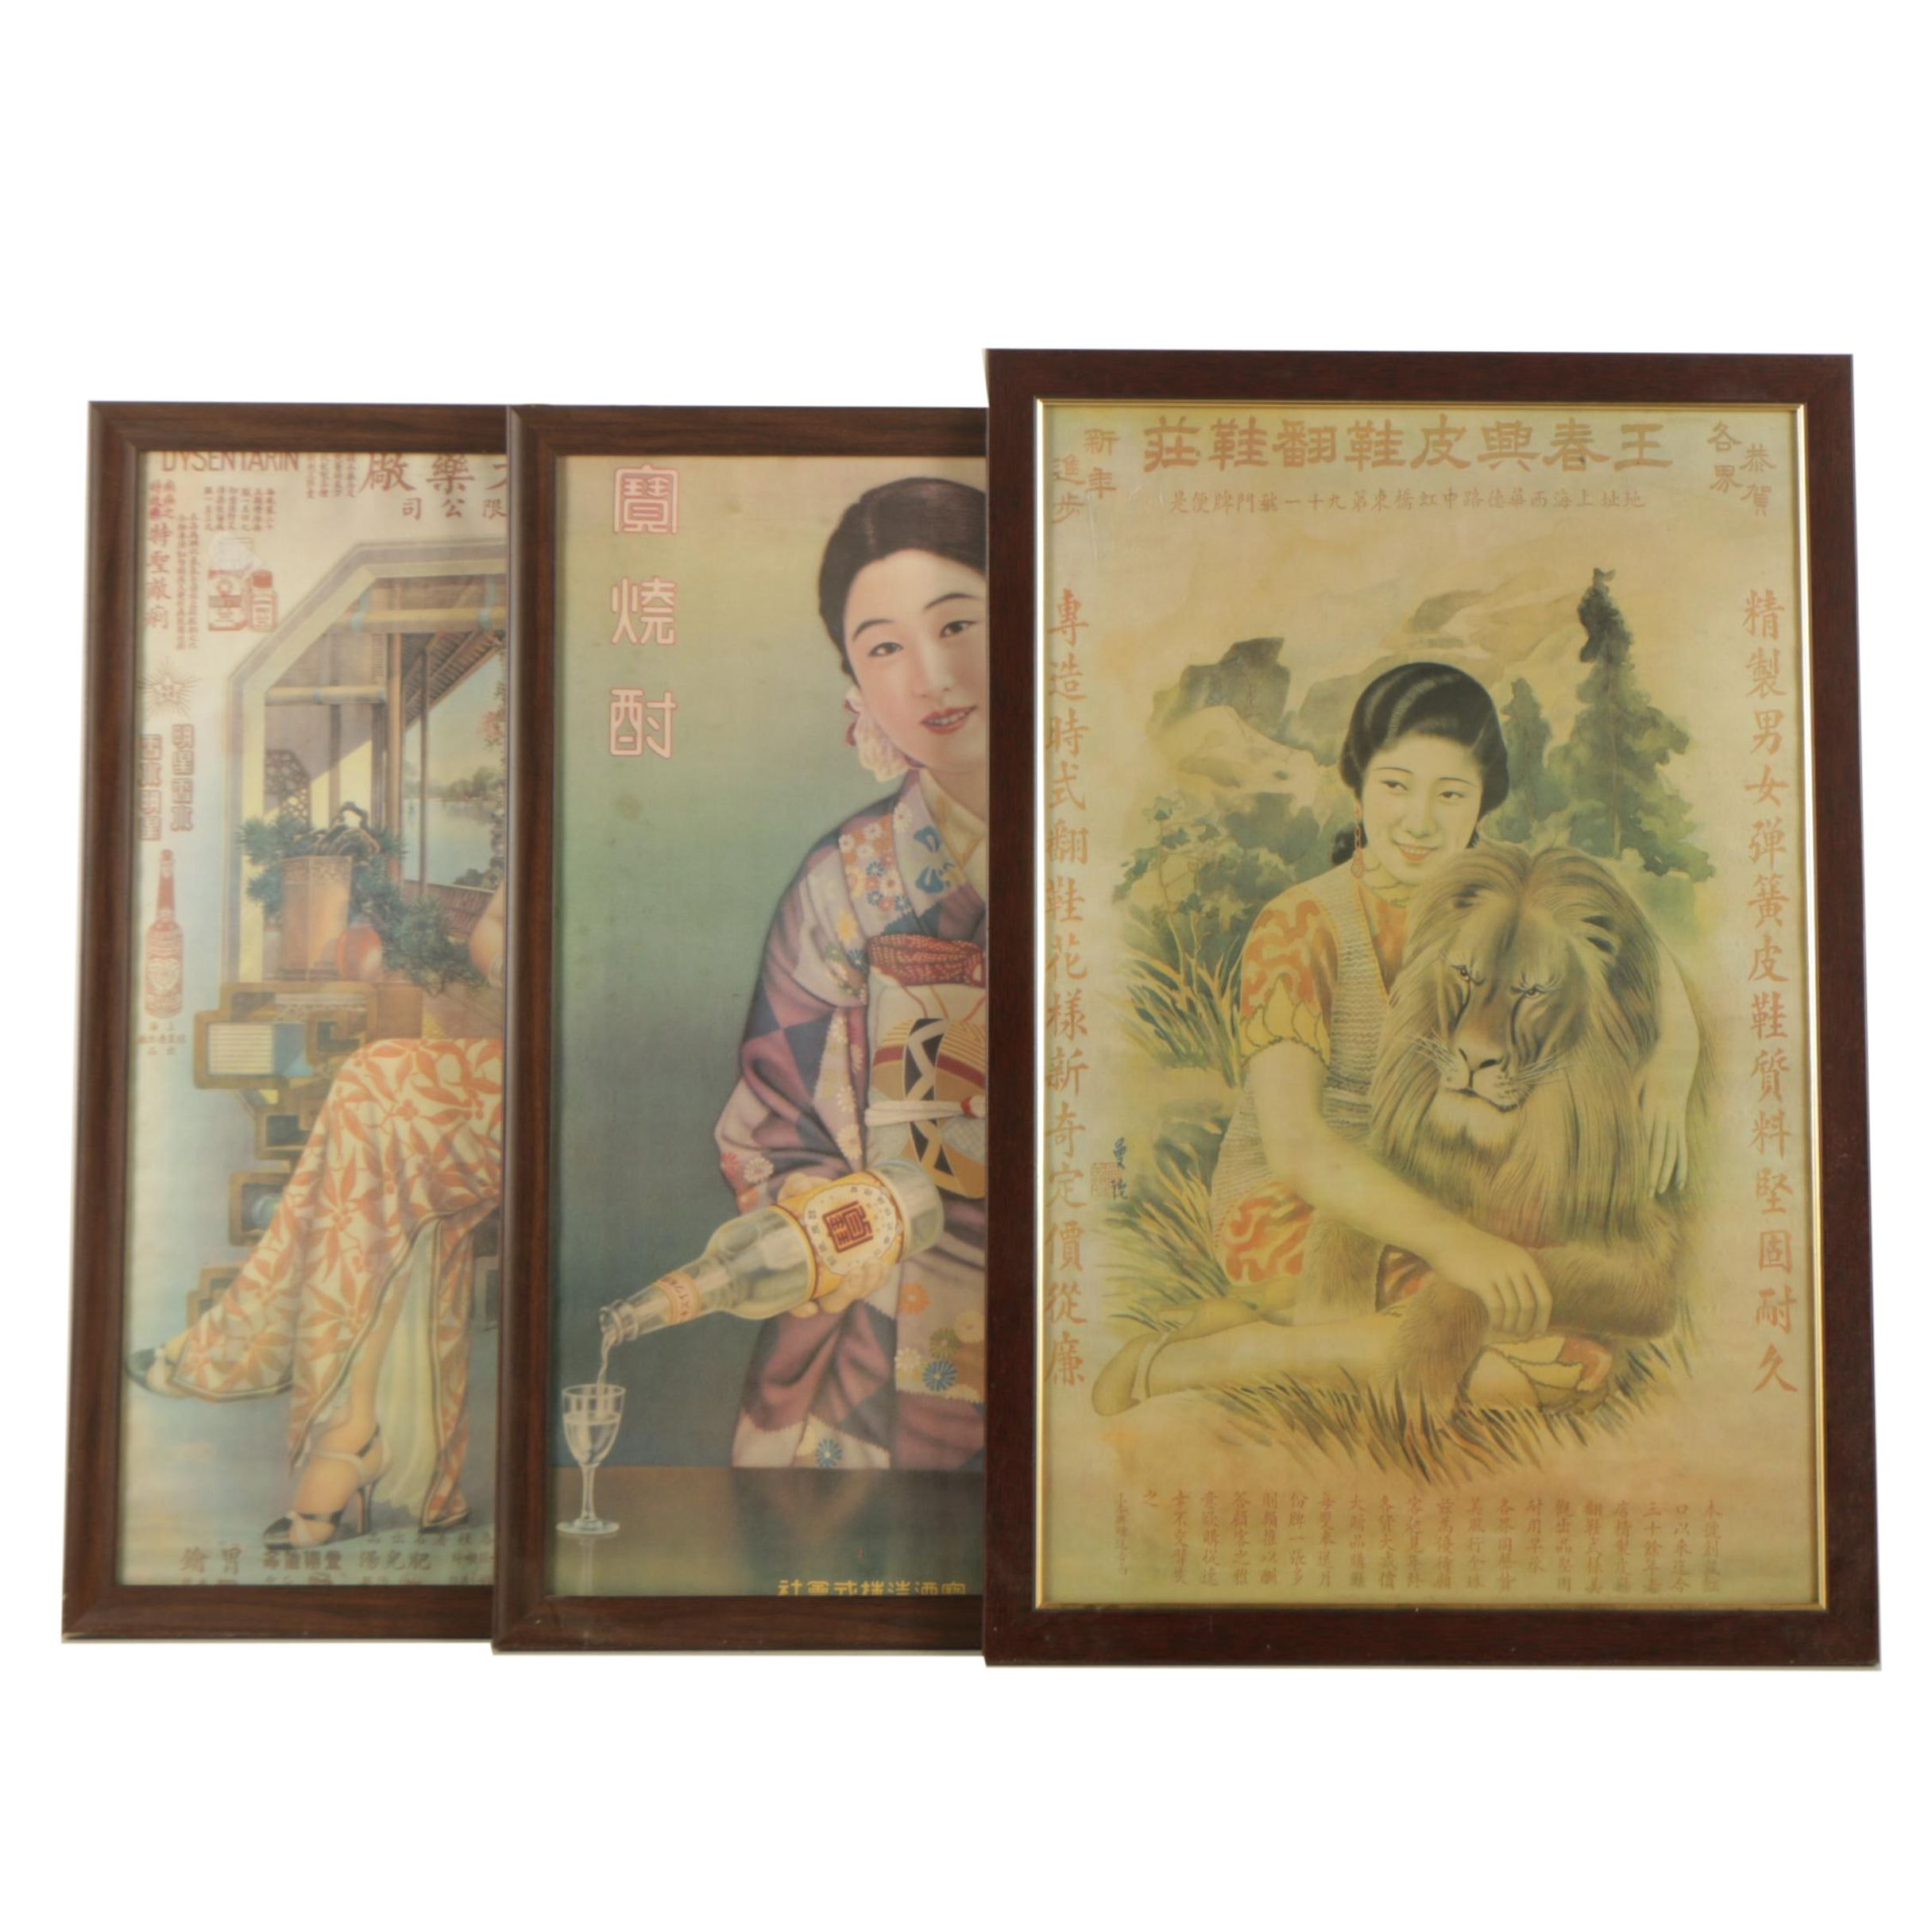 Three Offset Lithographs After Mid-Century Chinese Advertising Posters